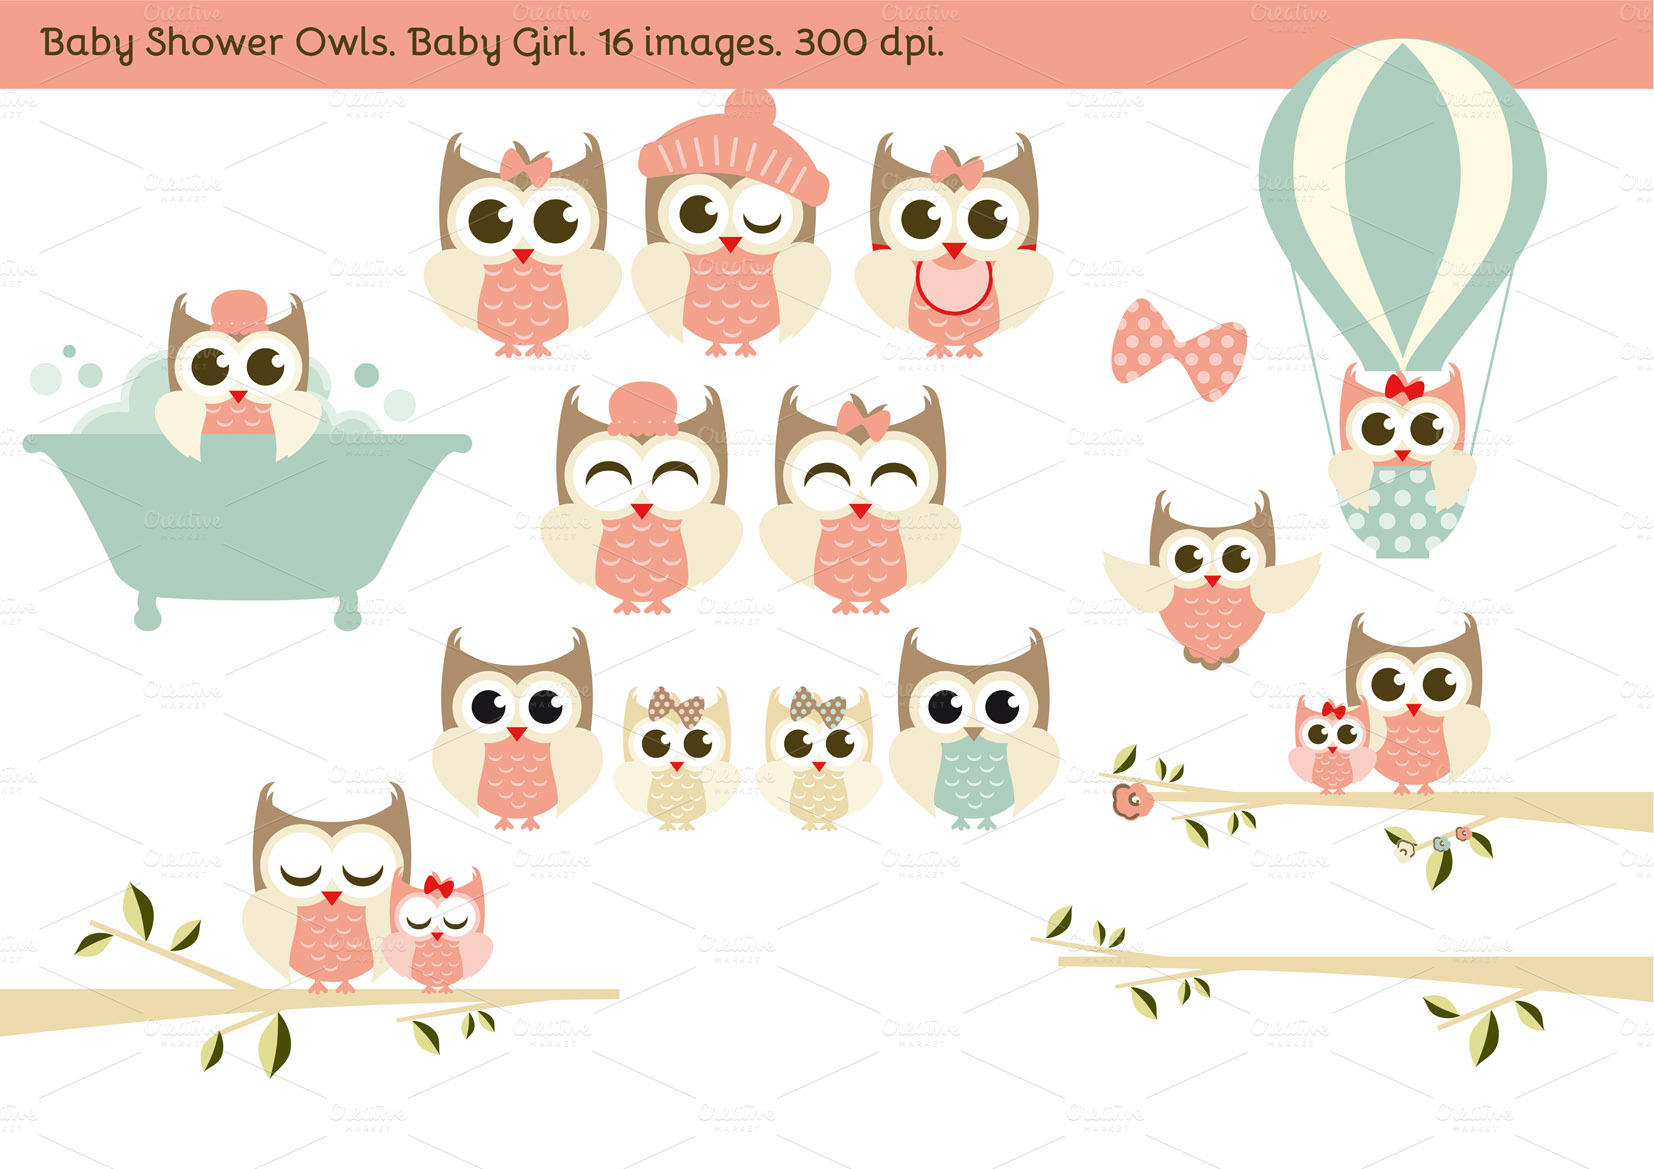 baby shower owls baby girl illustrations on creative market